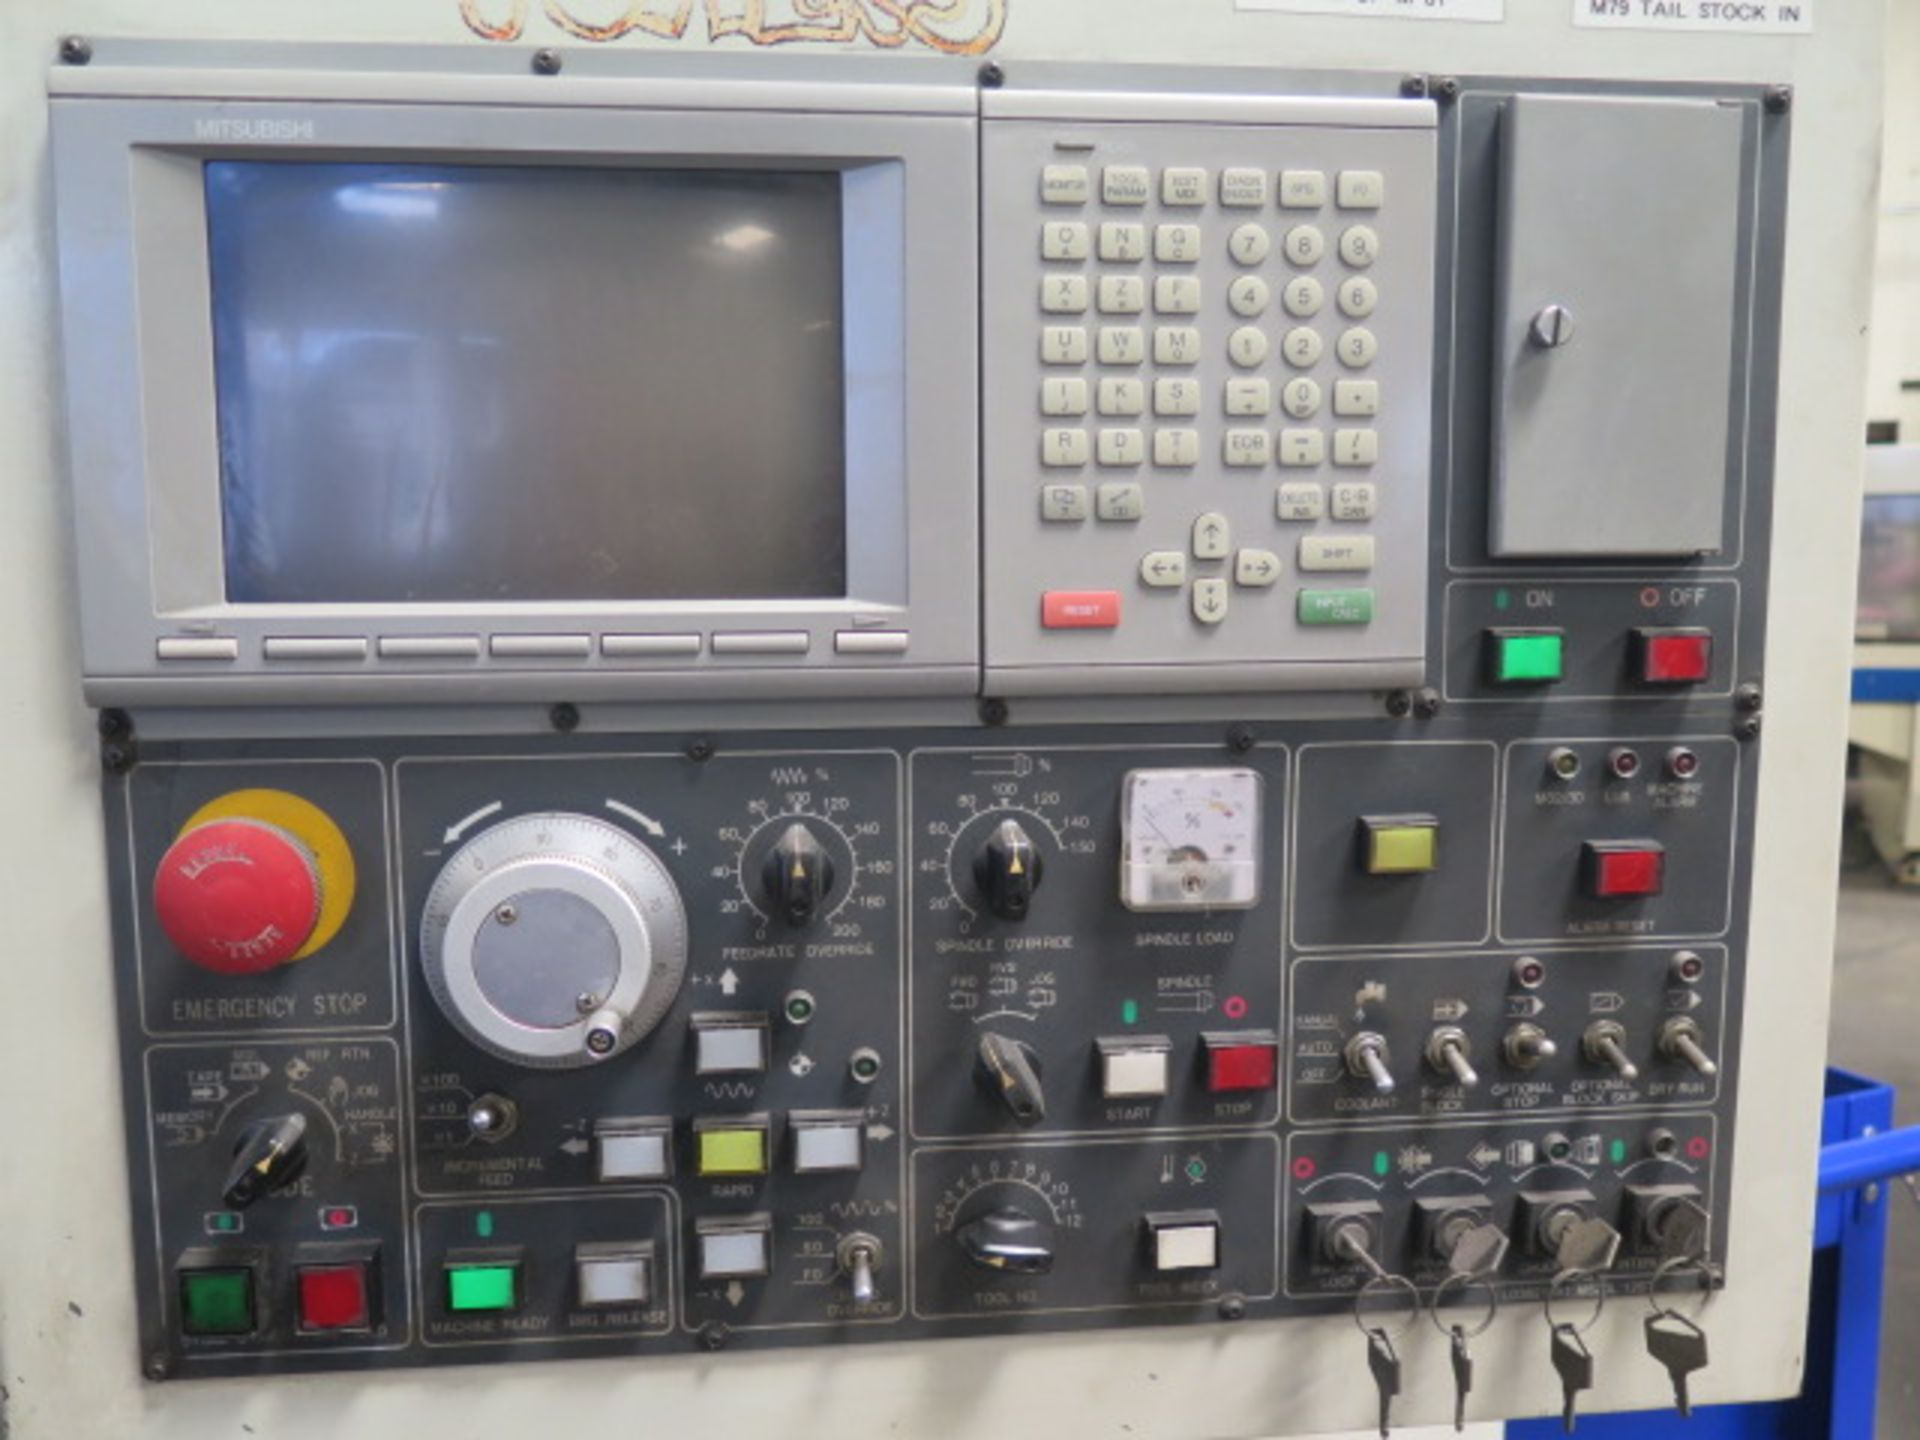 1996 Daewoo PUMA 8S CNC Turning Center s/n PM8S0500 w/ Mits Controls, Tool Presetter, SOLD AS IS - Image 4 of 14